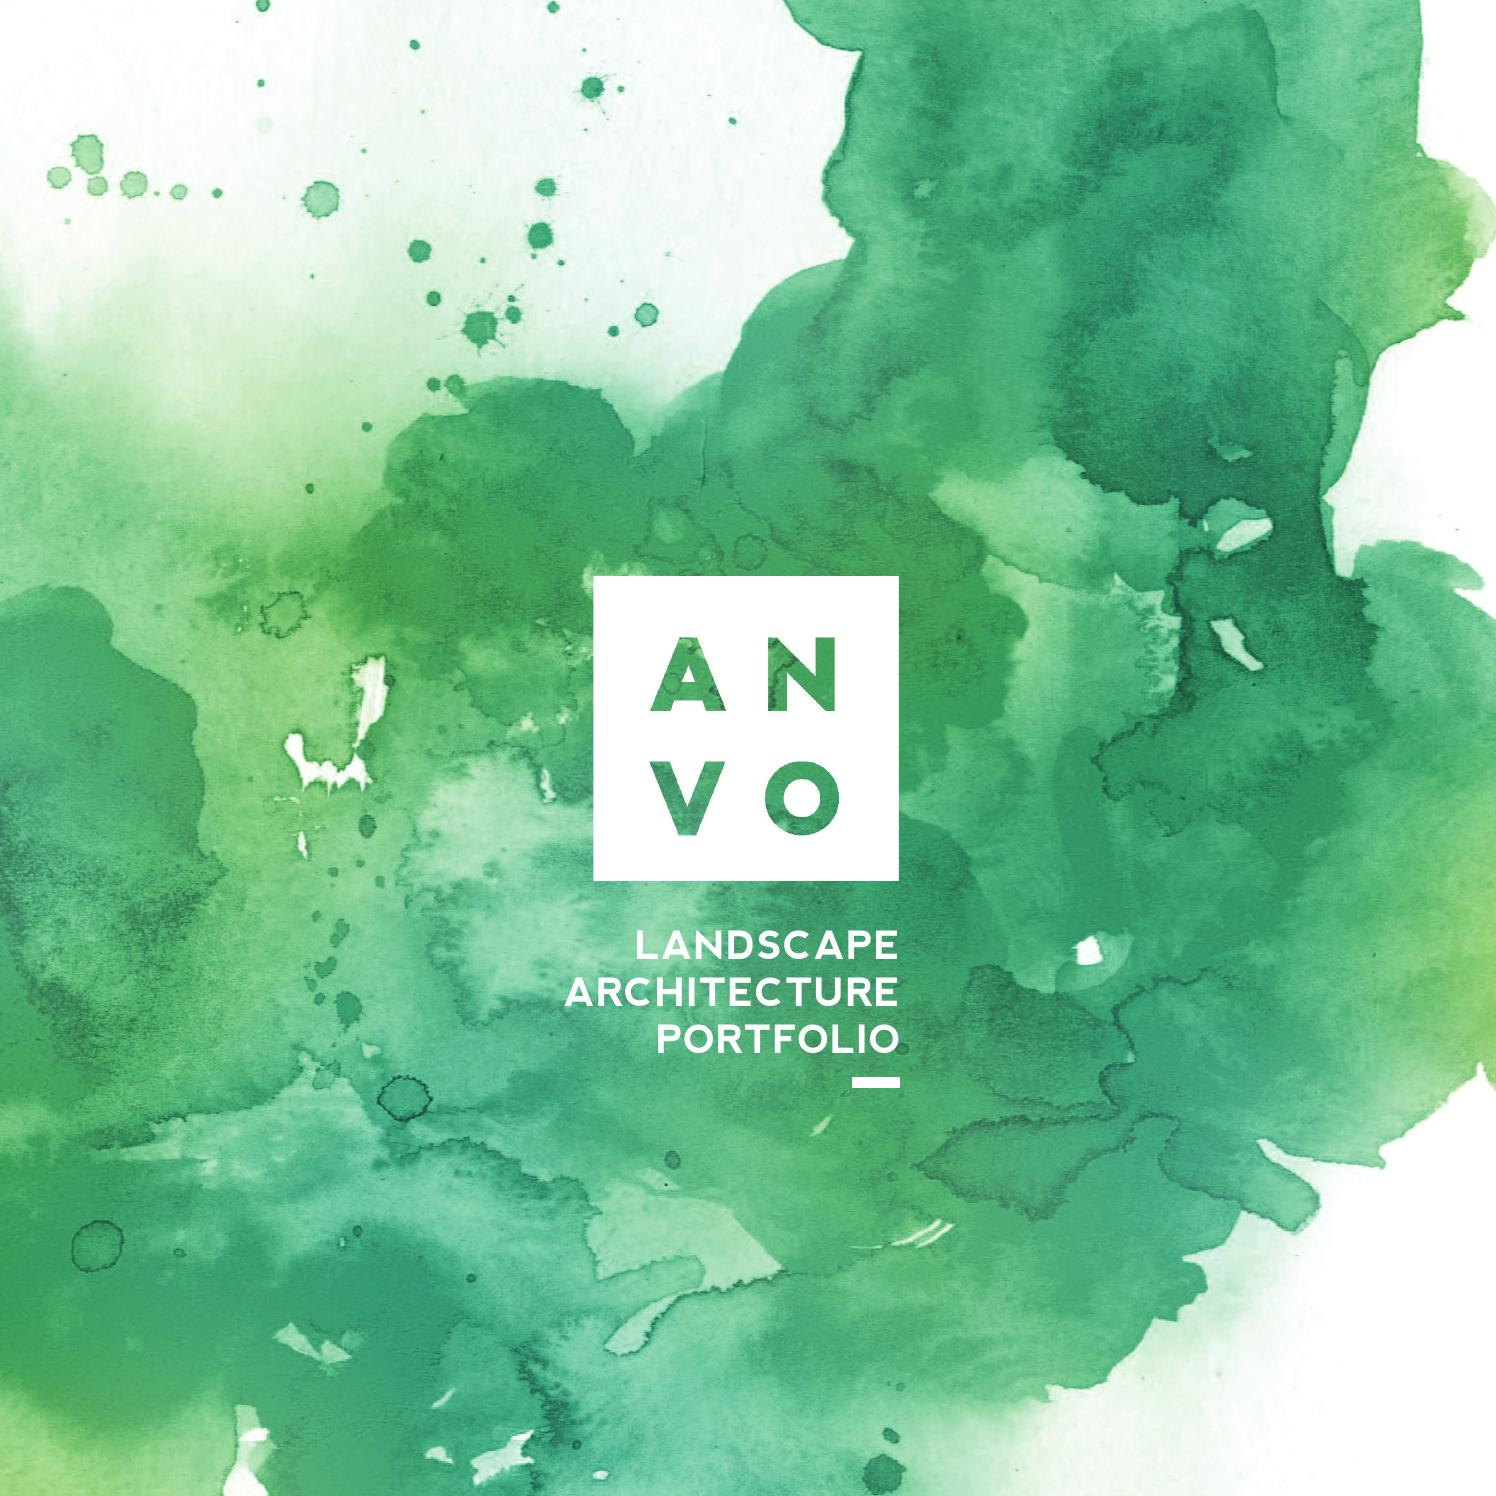 Landscape Architecture Portfolio By An Vo Issuu